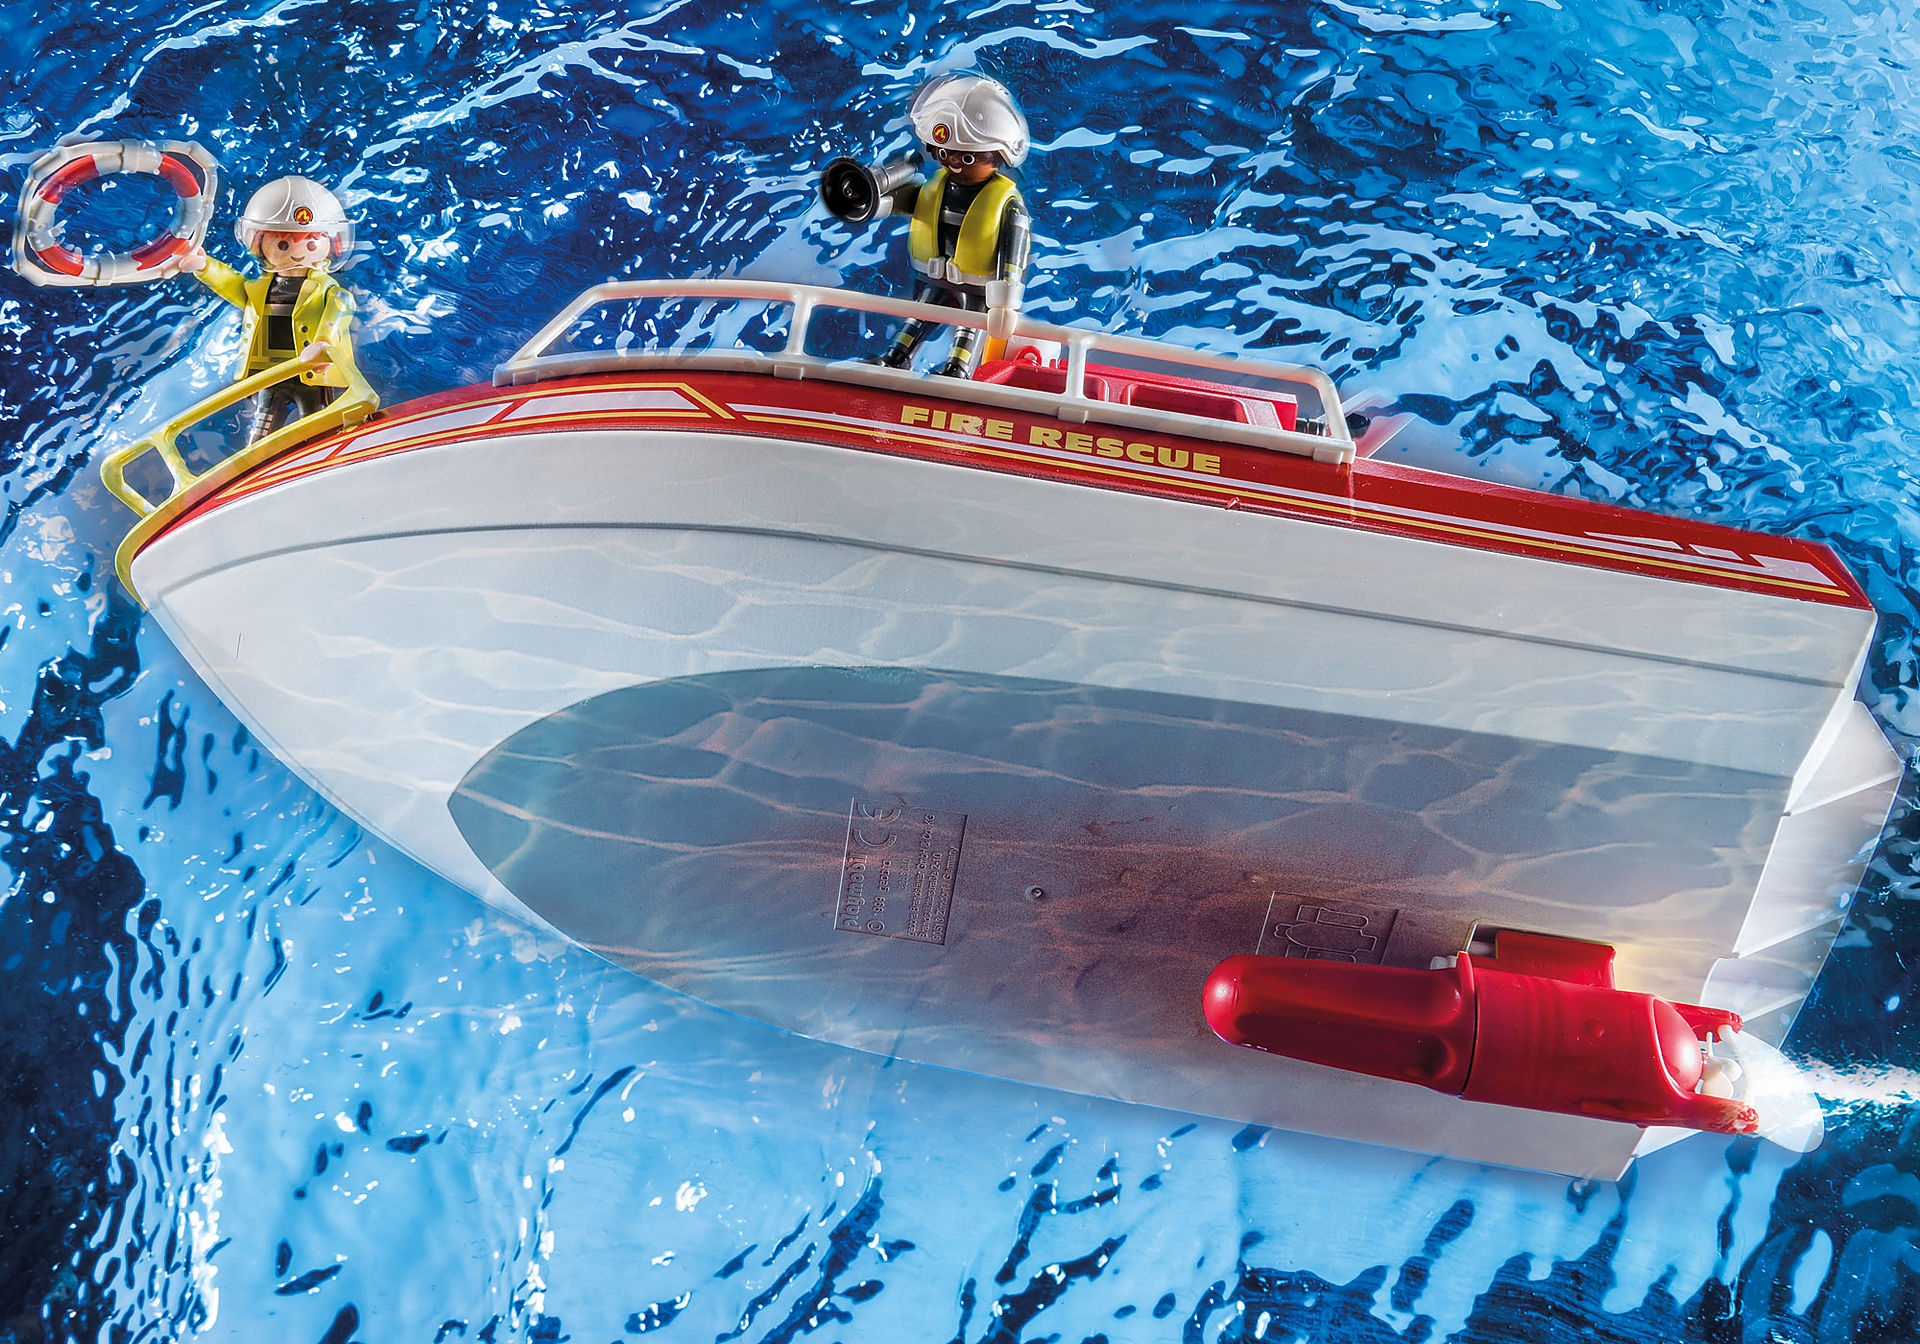 http://media.playmobil.com/i/playmobil/70147_product_extra3/Feuerlöschboot